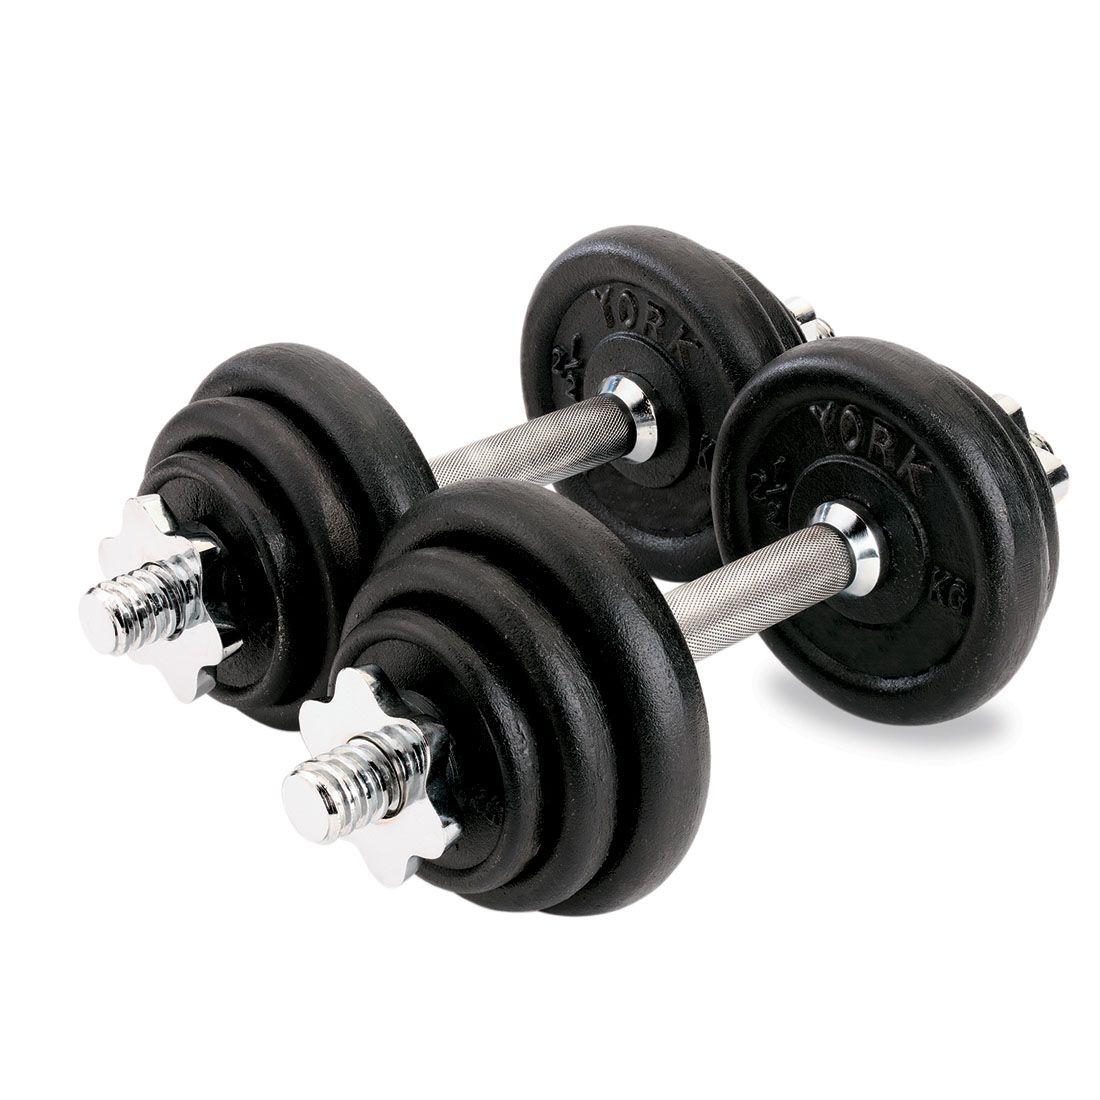 Free Weights Vs Barbell: Weights Bench Sale. Cybex Free Weights Olympic Bench Press